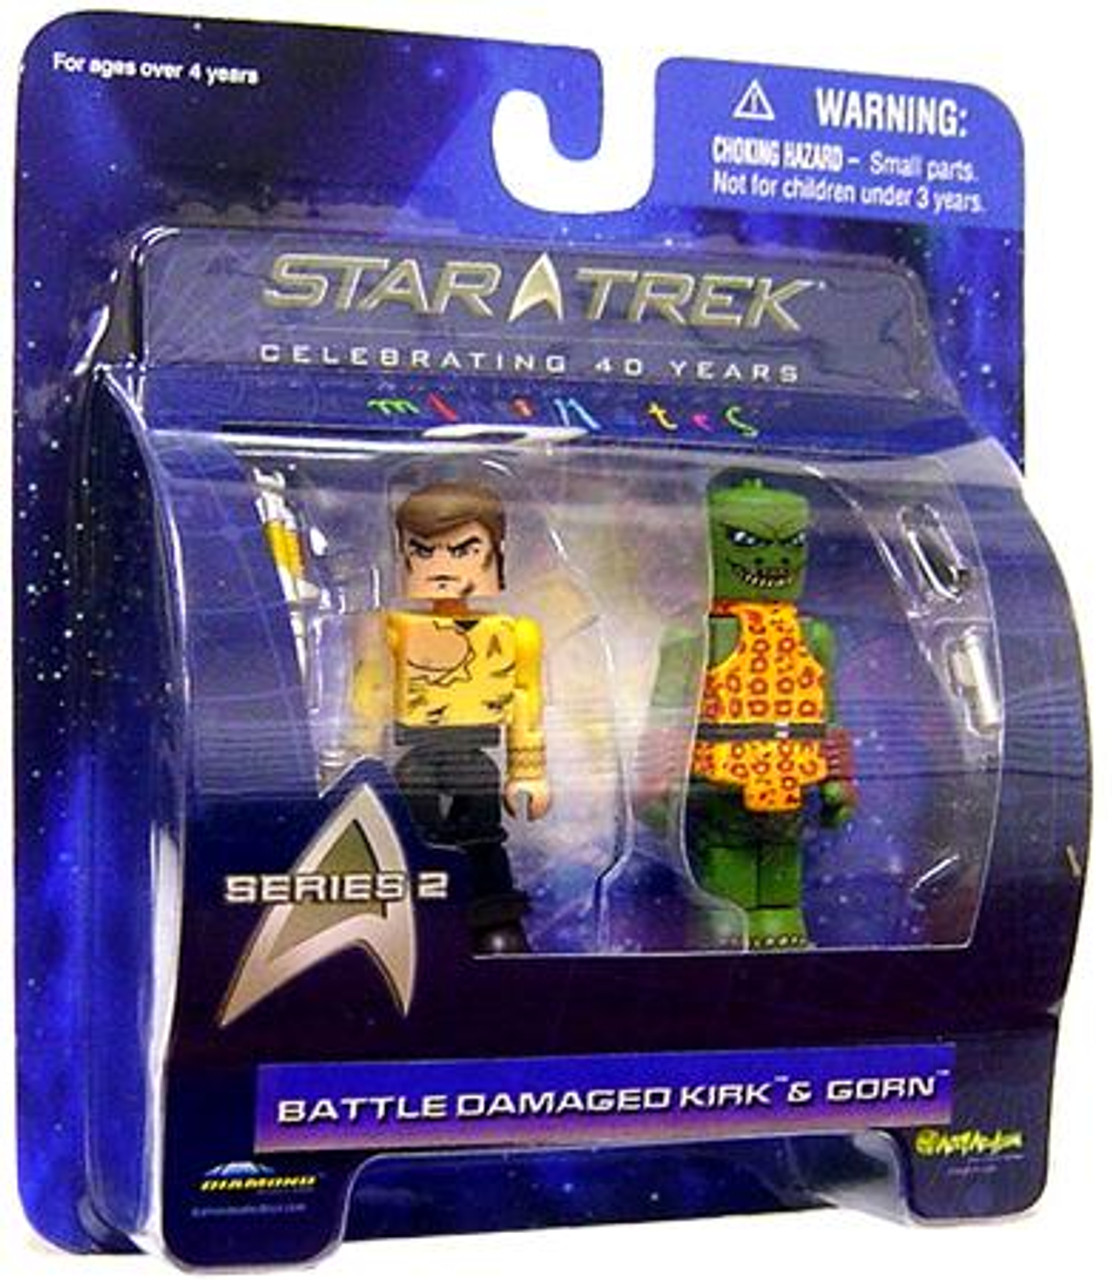 Star Trek The Original Series MiniMates Series 2 Battle Damaged Kirk & Gorn Minifigure 2-Pack